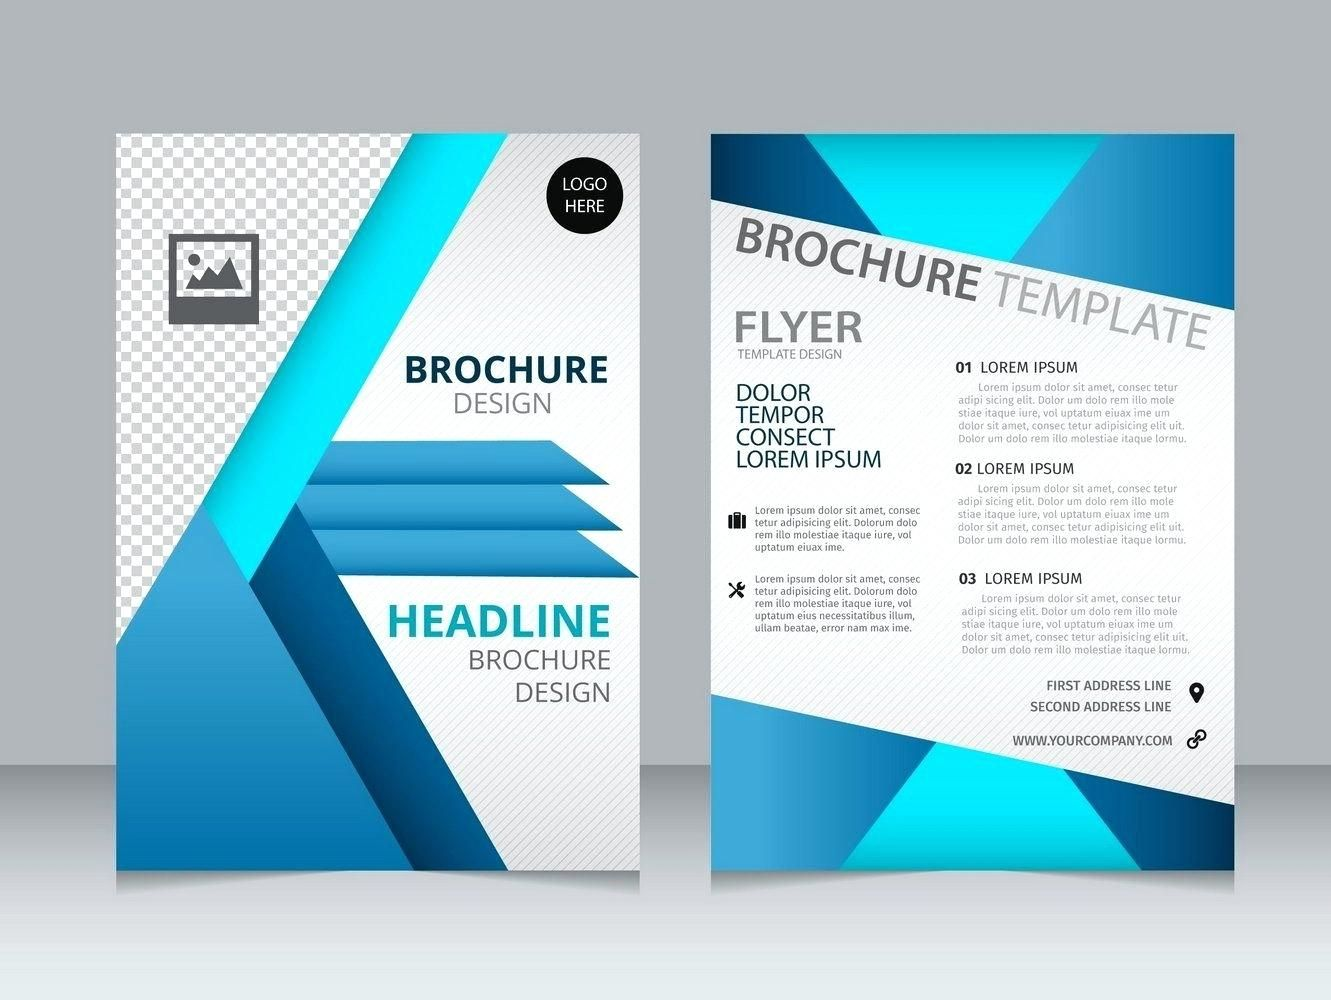 The Astounding Free Brochure Template Downloads For Word Templates Intended For Free Free Brochure Template Brochure Template Brochure Templates Free Download Microsoft word brochure template download